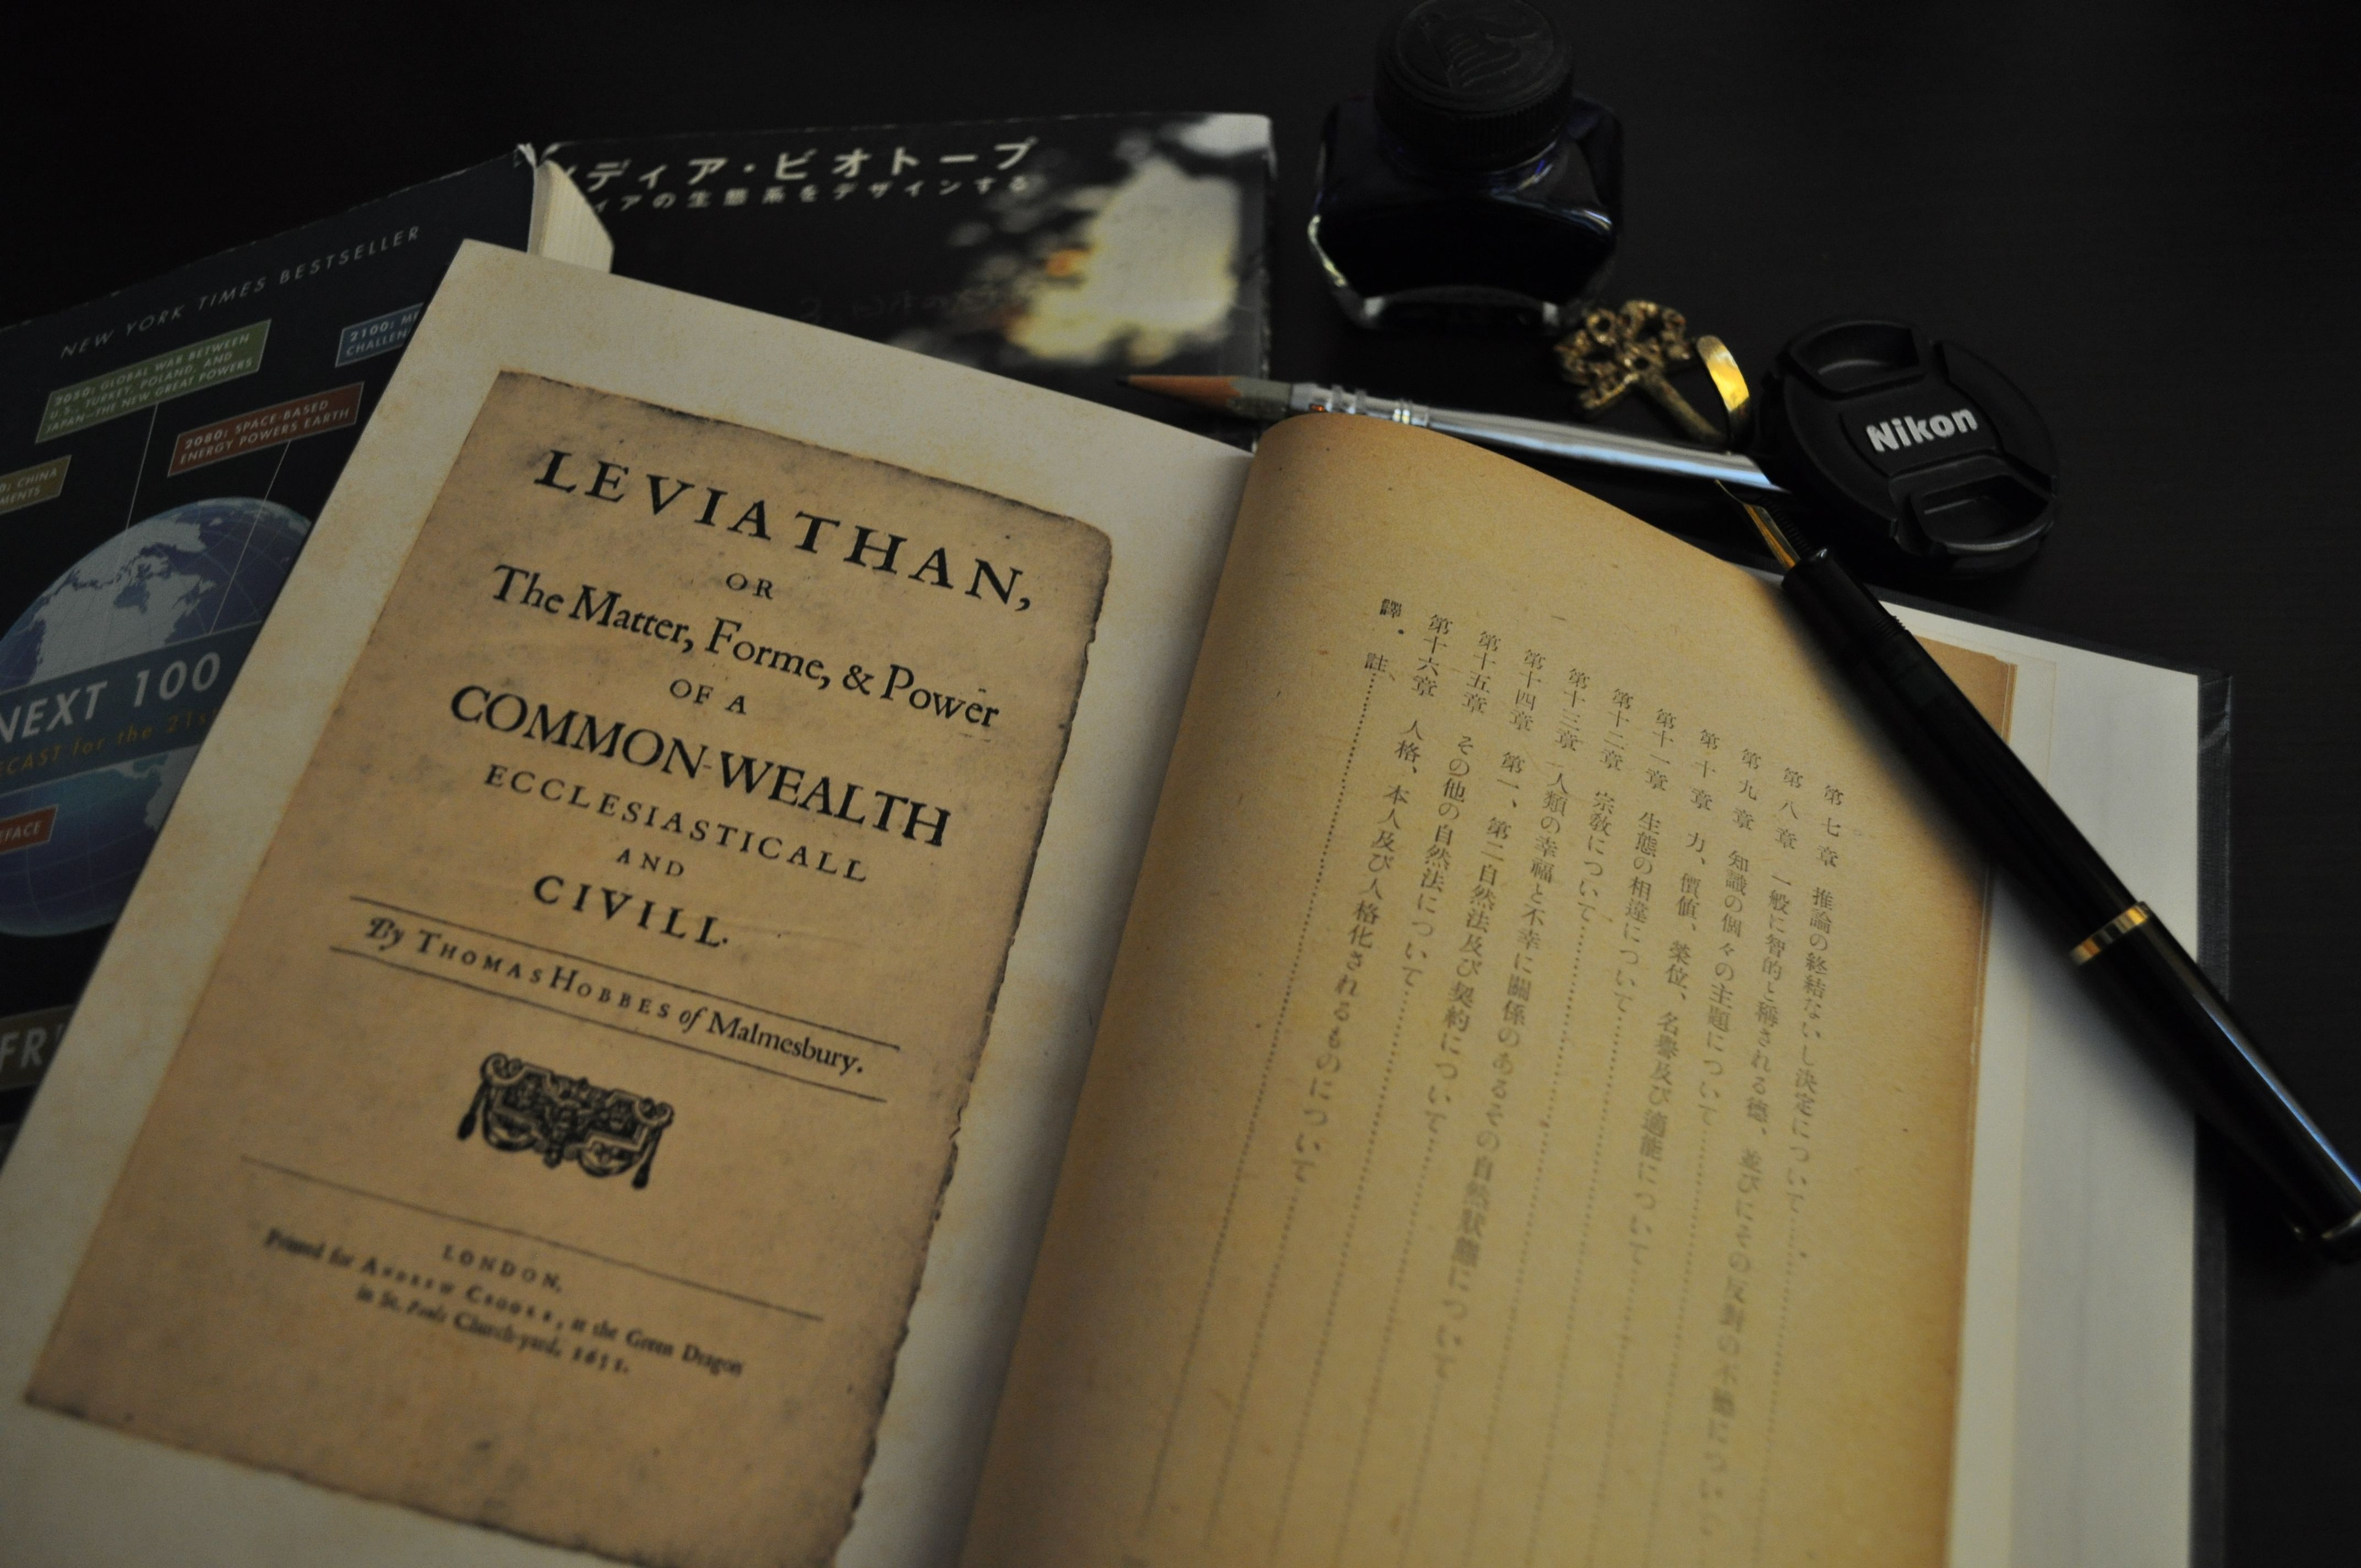 Philosophy # Leviathan # Thomas Hobbes # the nature right # power of a commonwealth